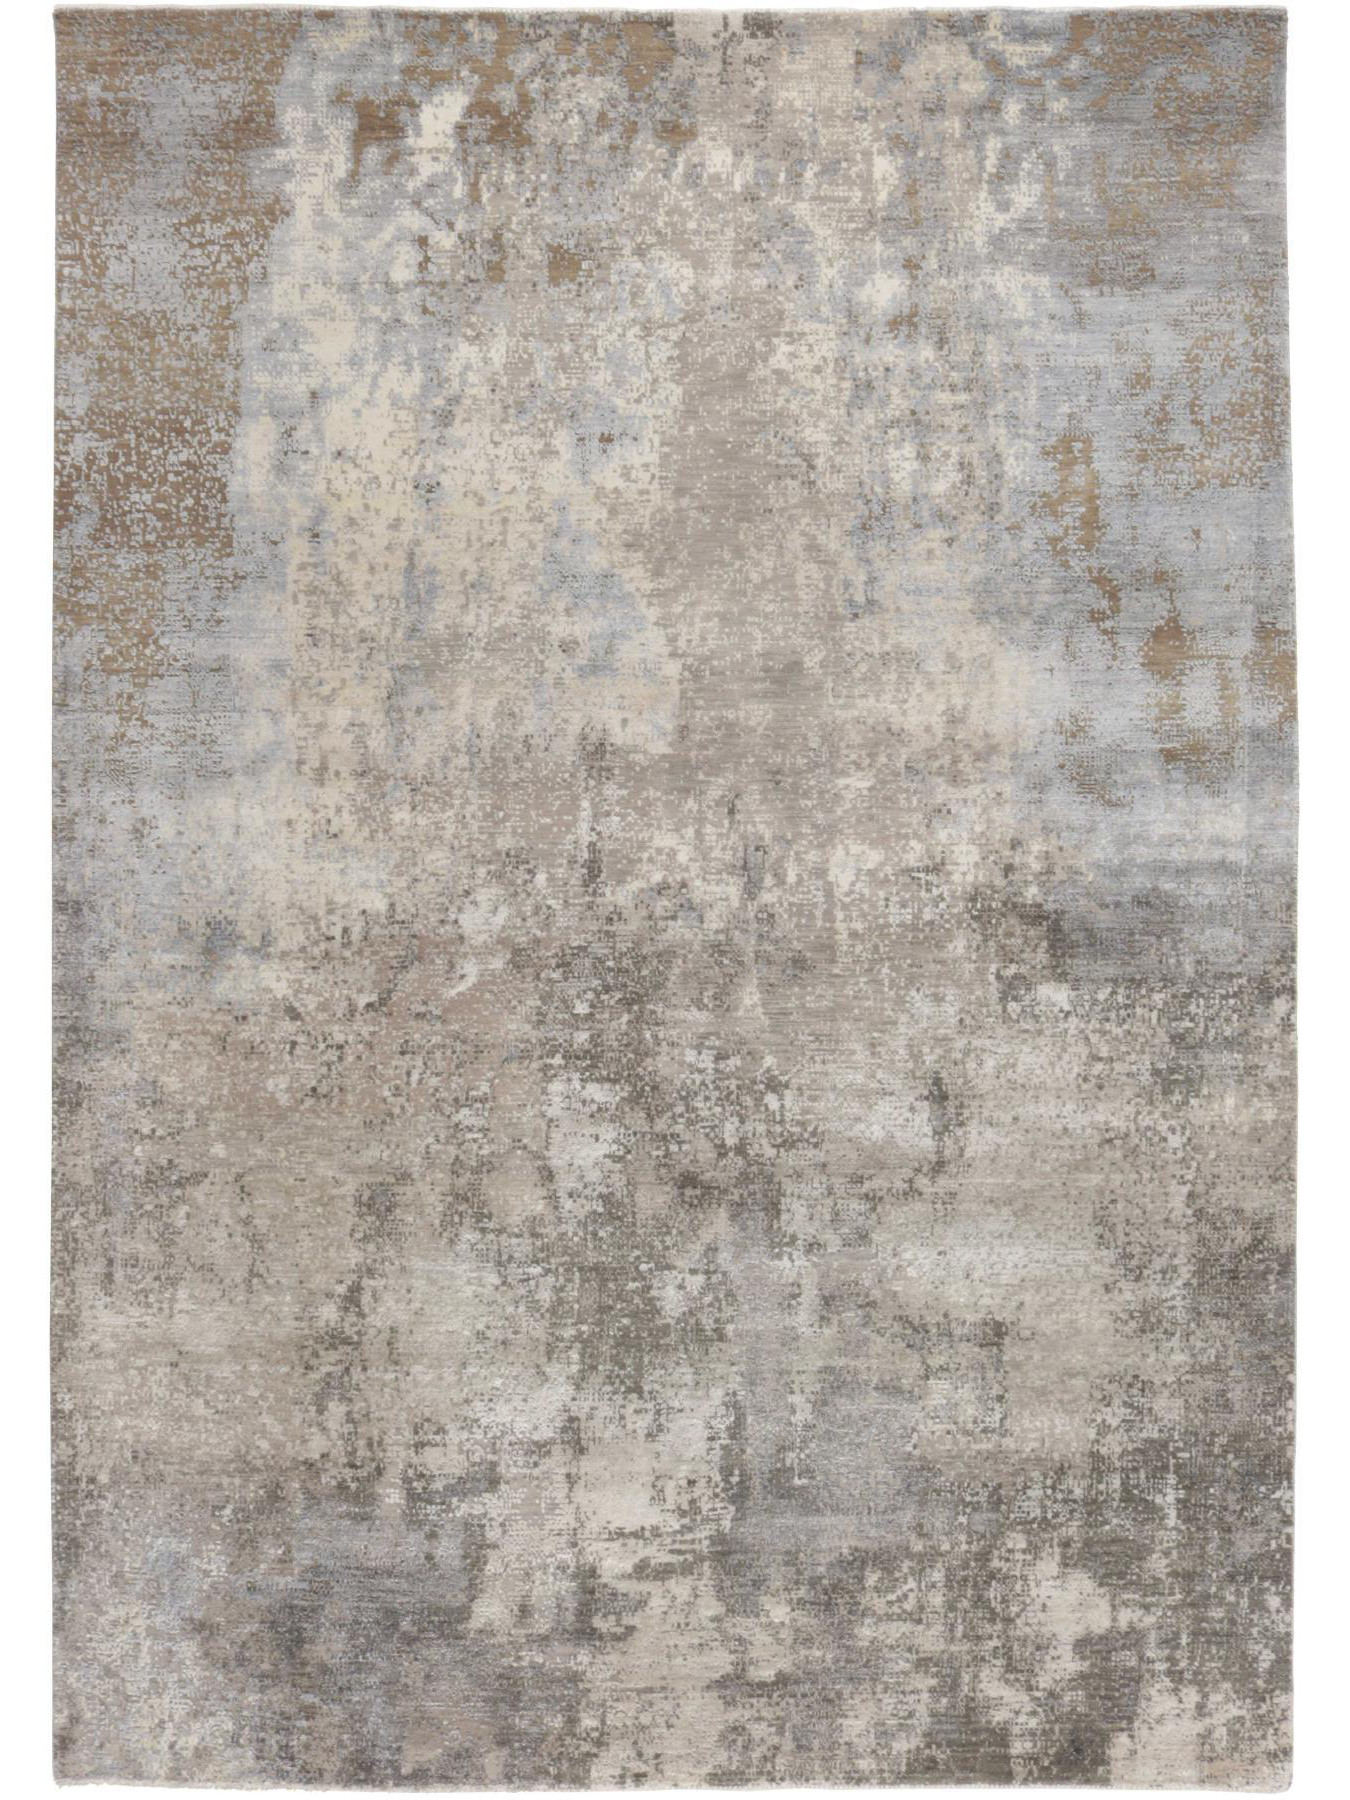 Tapis design - Seduction-840162B